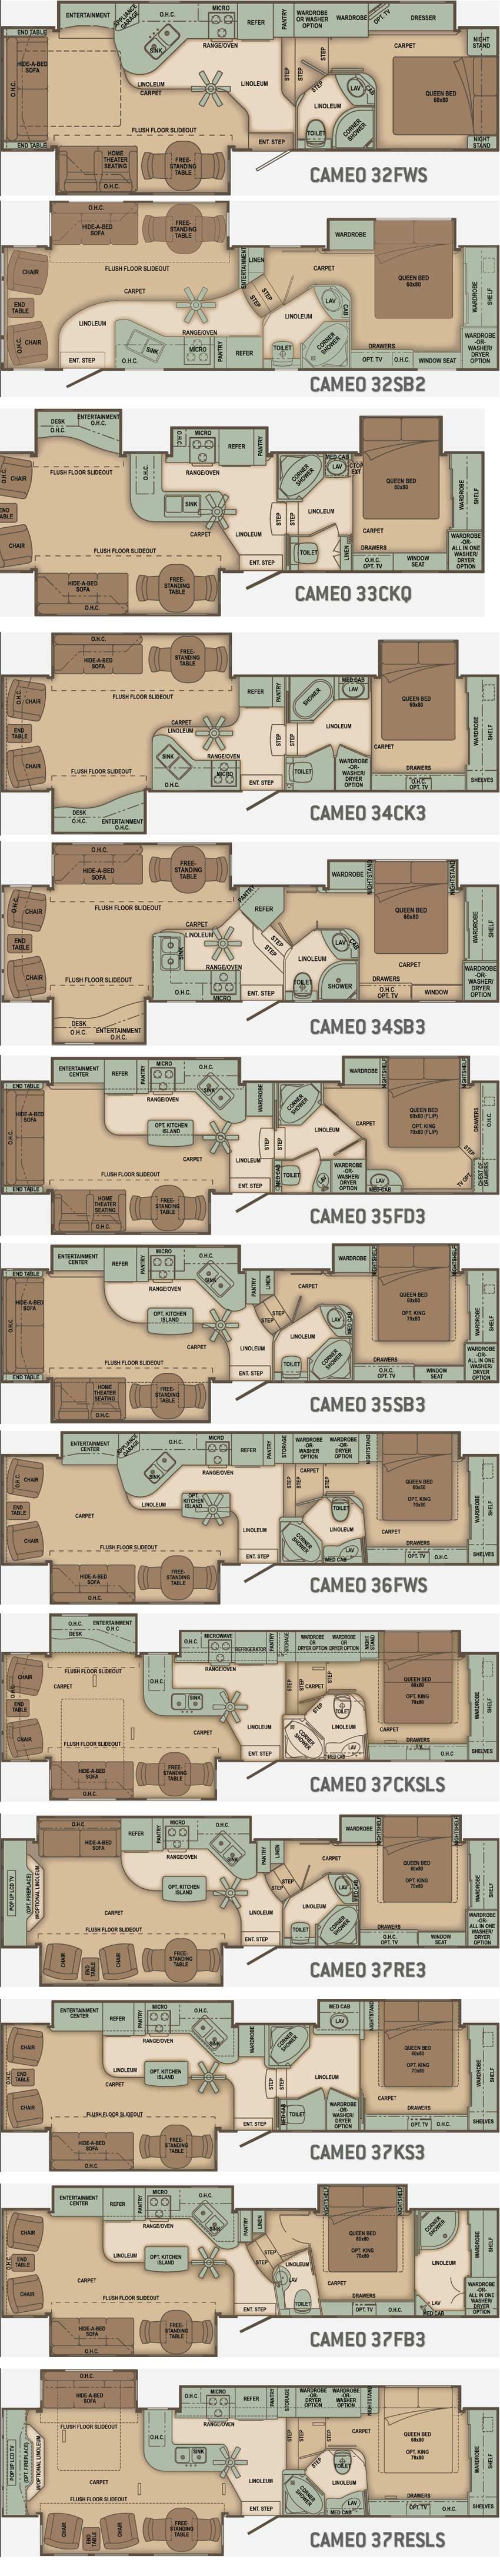 Carriage Cameo Fifth Wheel Floorplans Large Picture Camper World Rv Floor Plans Rv Redo